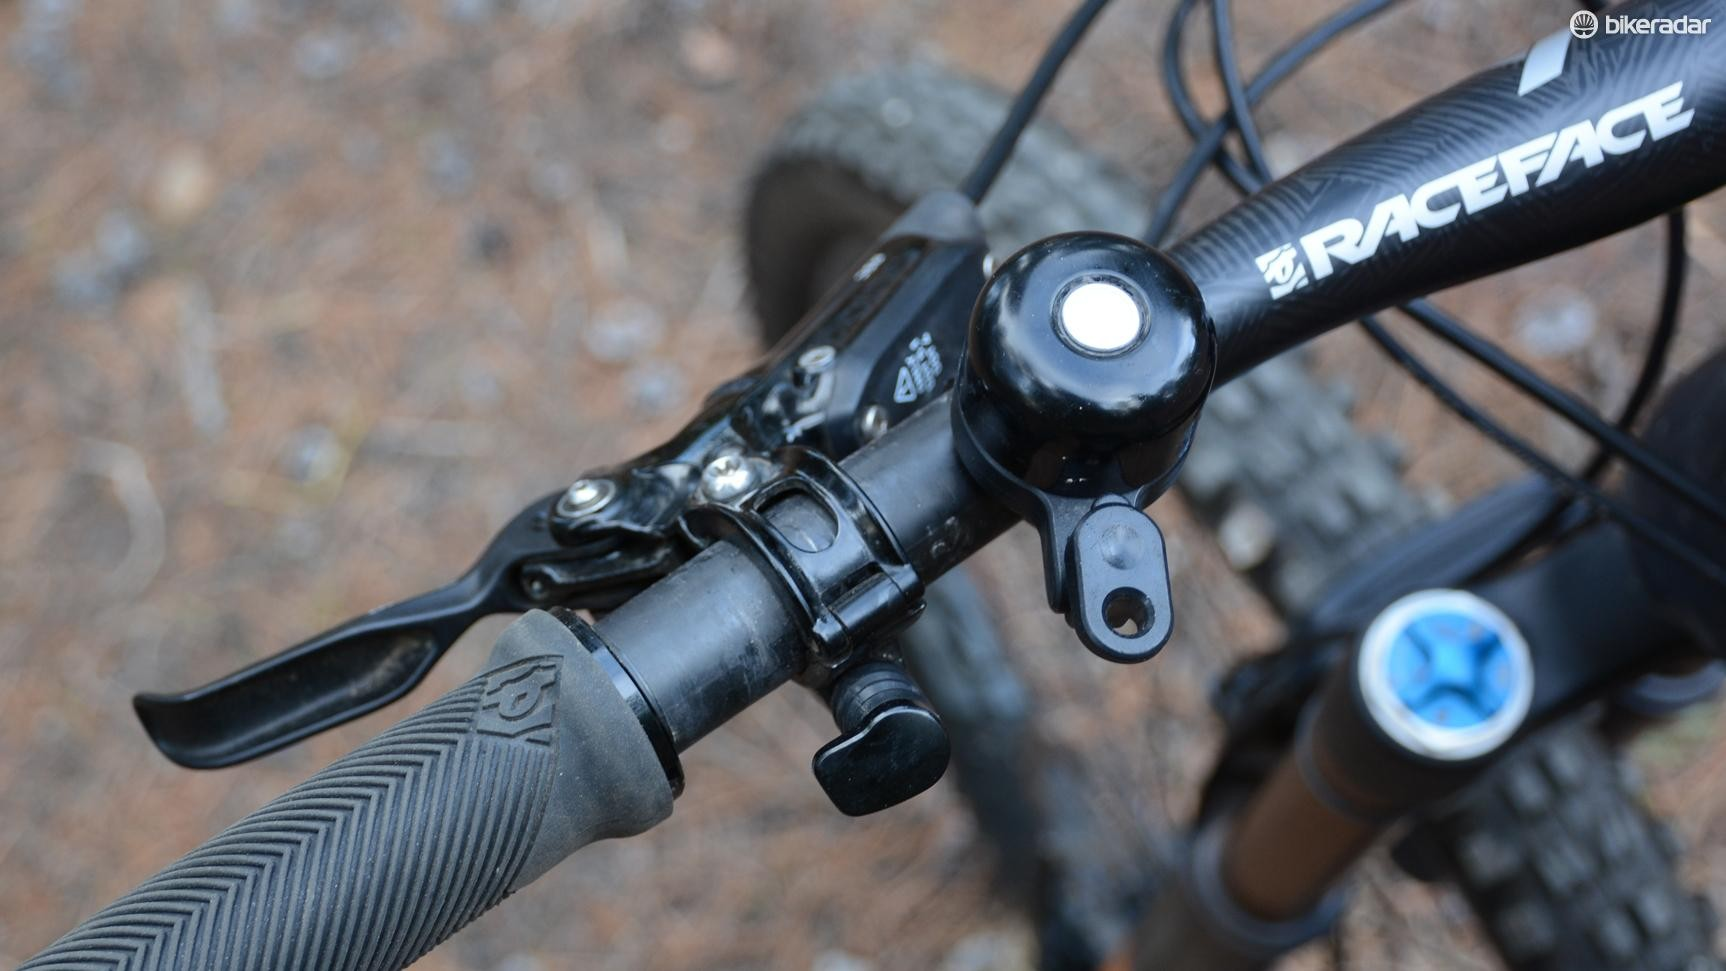 The Range came with a bell, all bikes should come with a bell